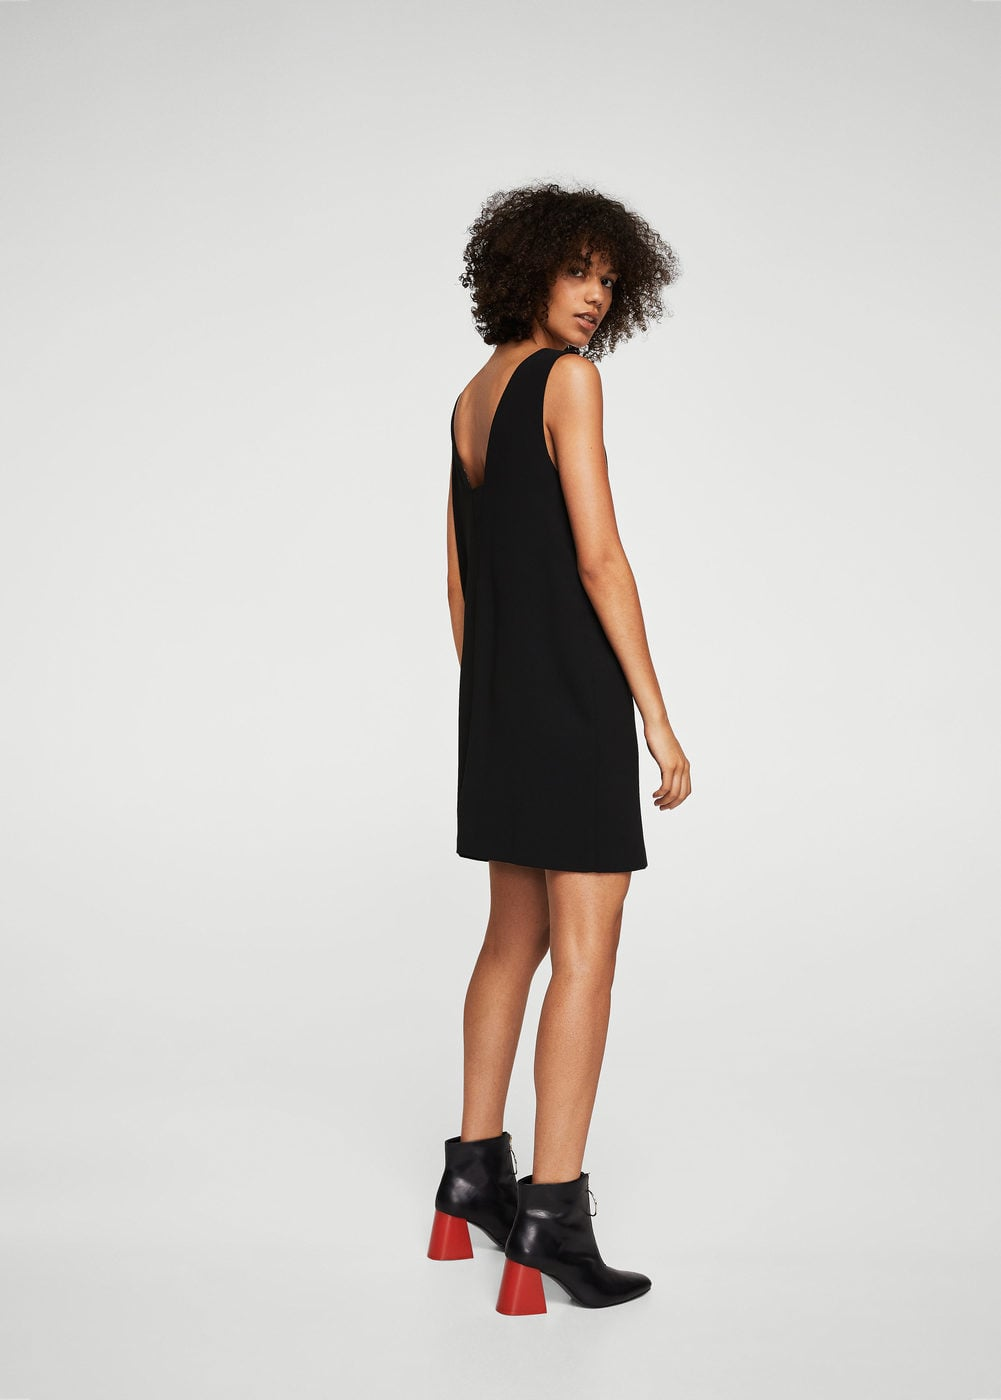 A woman in a black dress from Mango